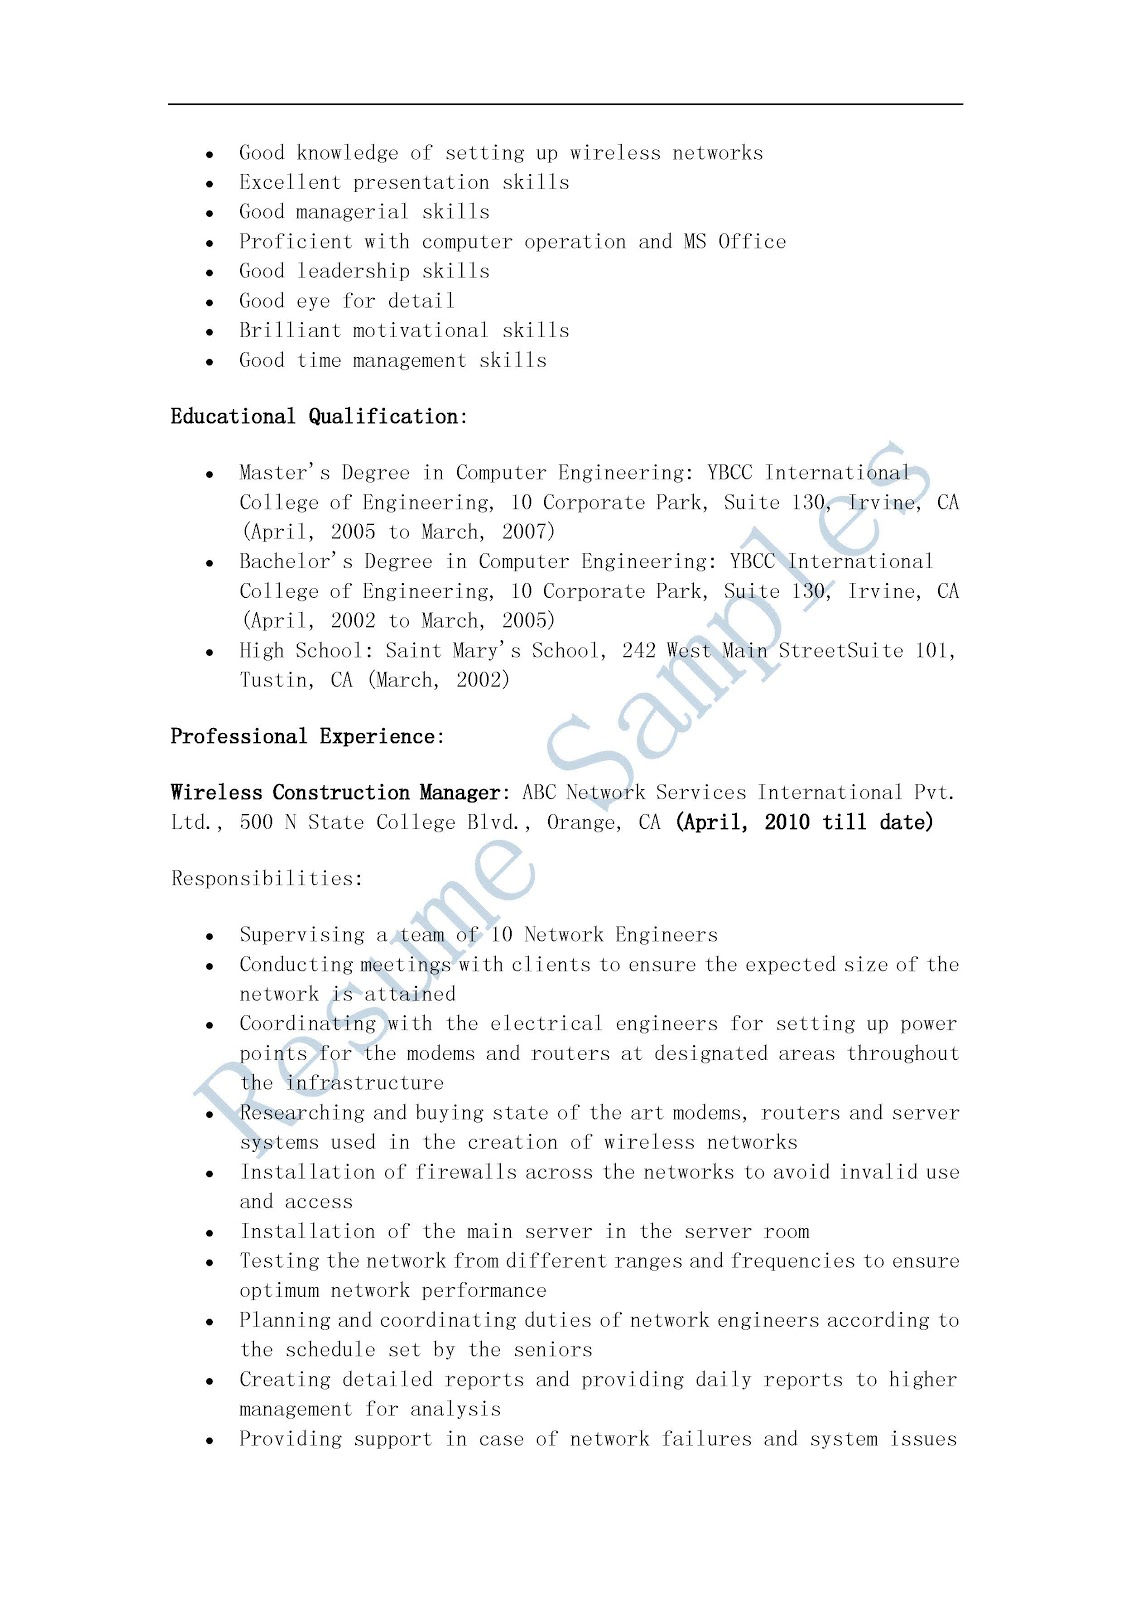 Cellular phone technician resume